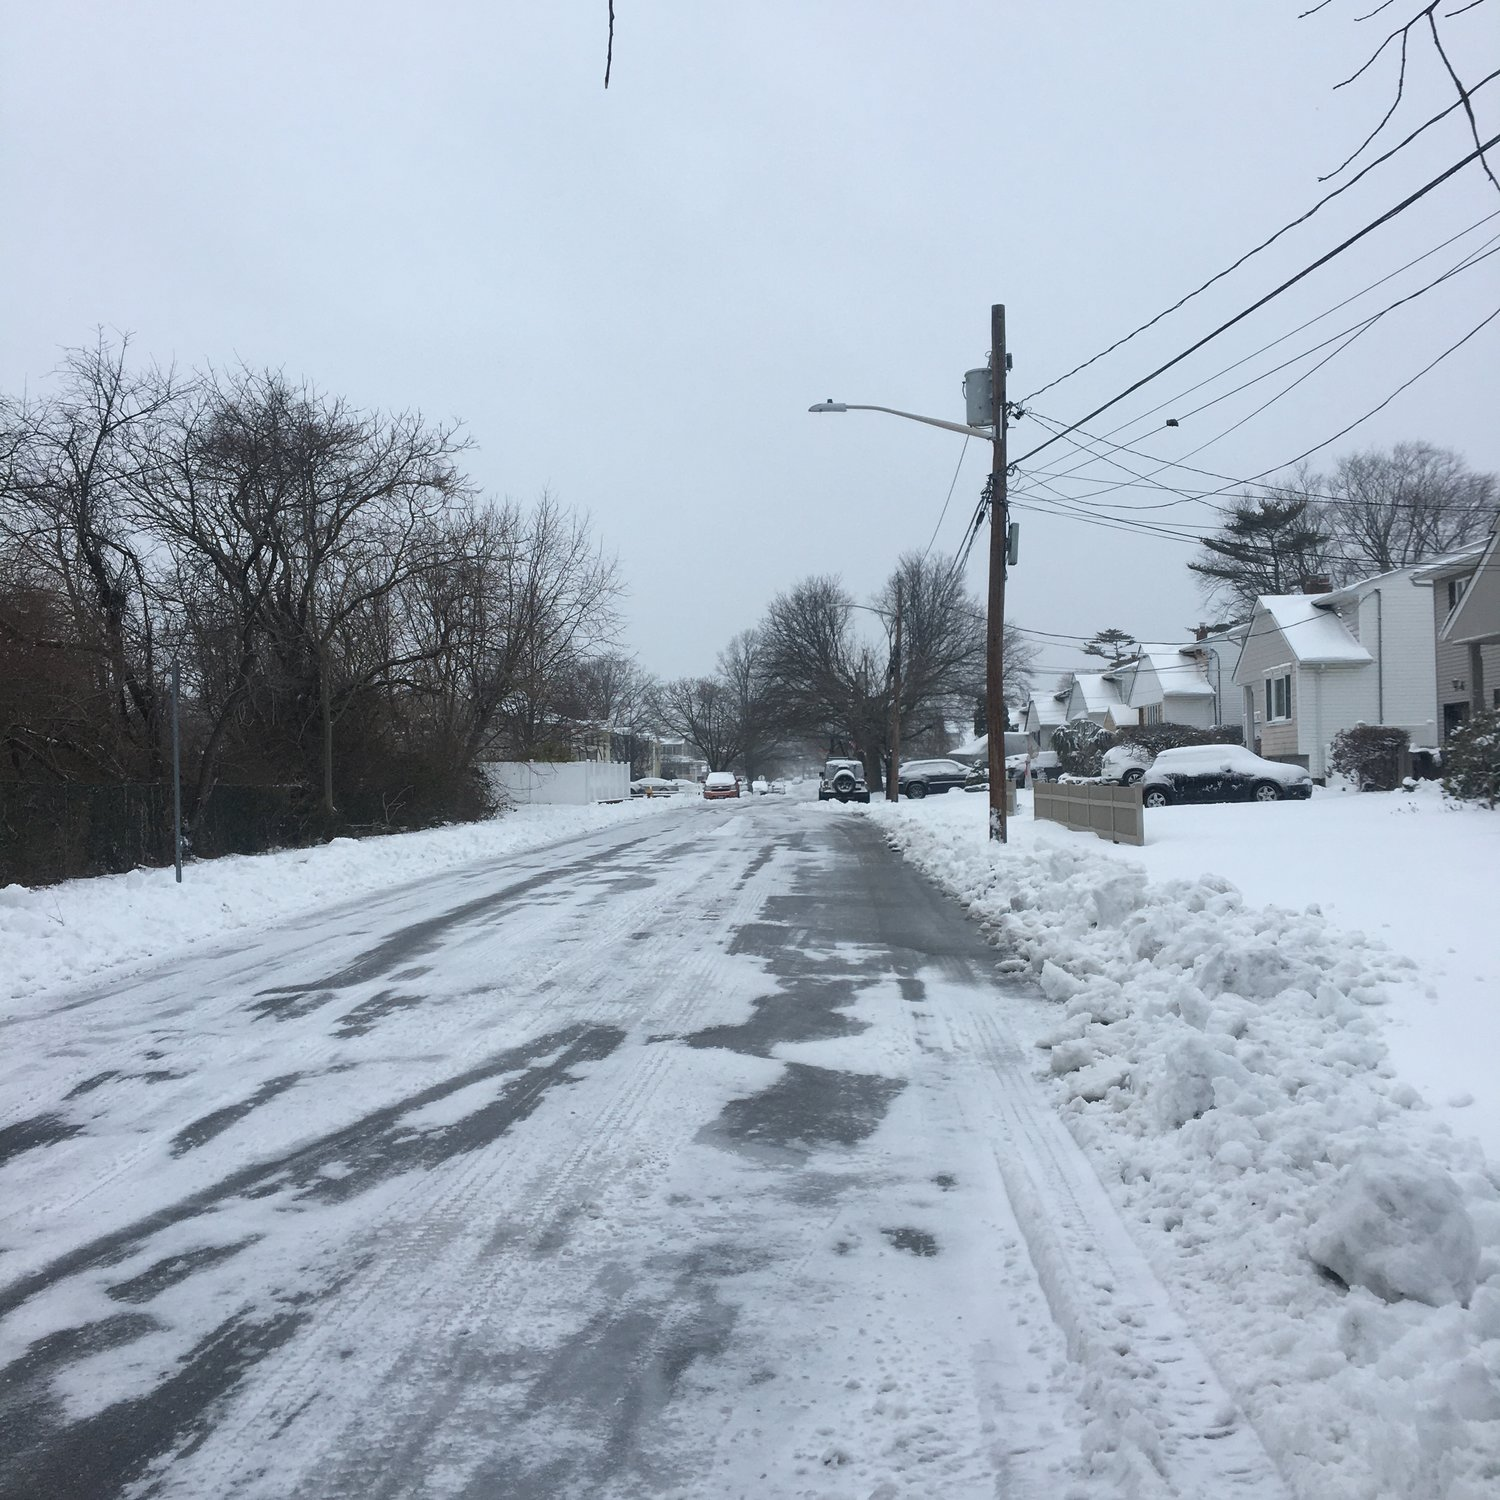 Maple Street in Seaford showed some icy road conditions Thursday morning.